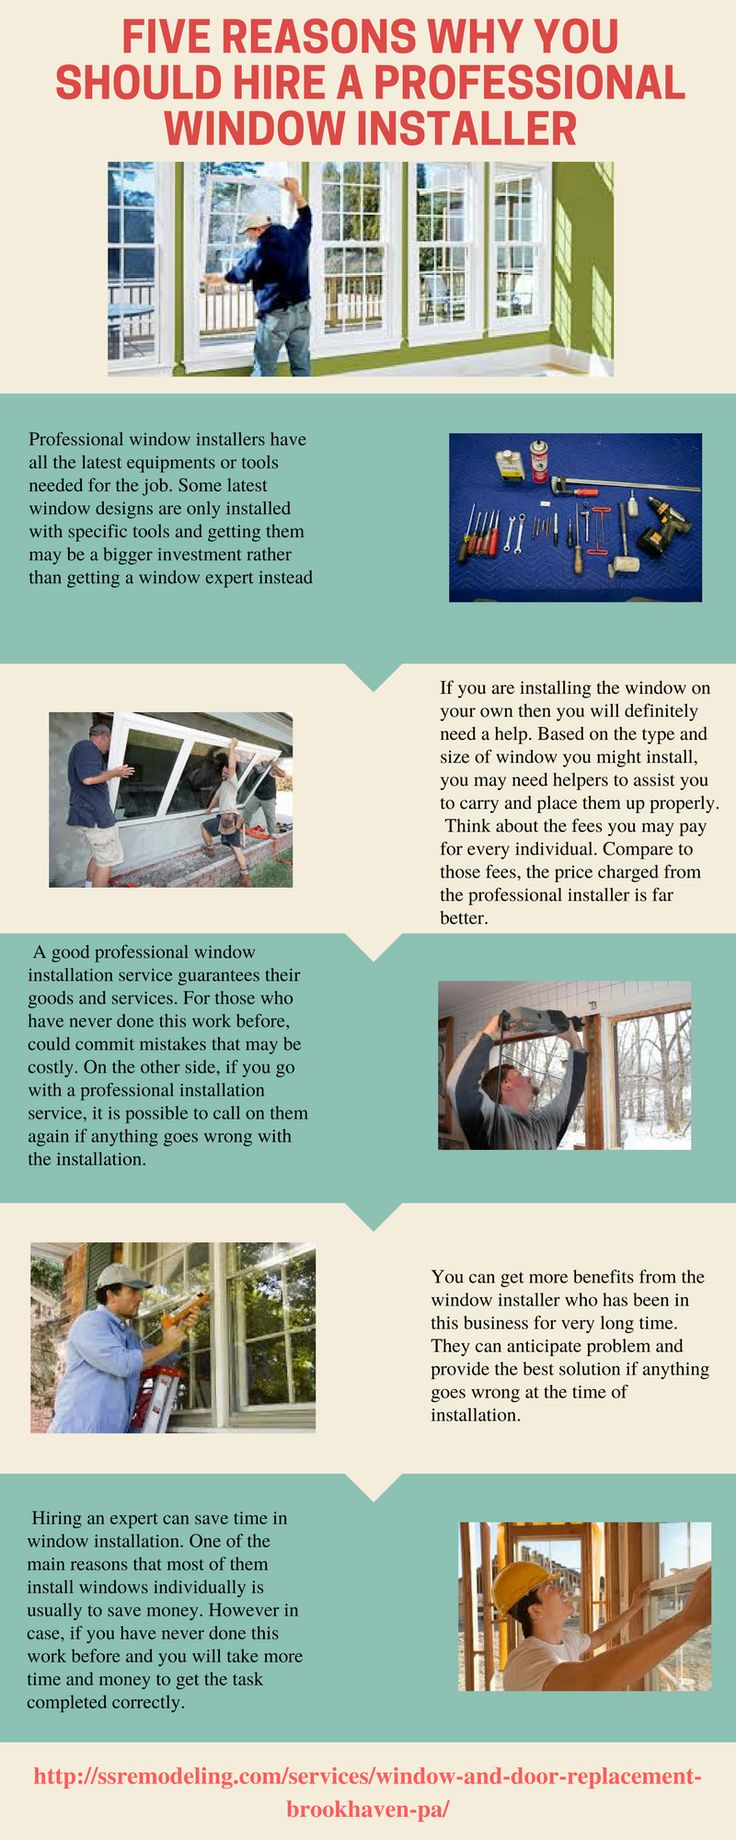 Five Reasons Why You Should Hire a Professional Window Installer http://www.liveinfographic.com/i/five-reasons-why-you-should-hire-a-professional-window-installer/ Tags: #infographic  #infographics #popular #pinterest #pinterestinfographics